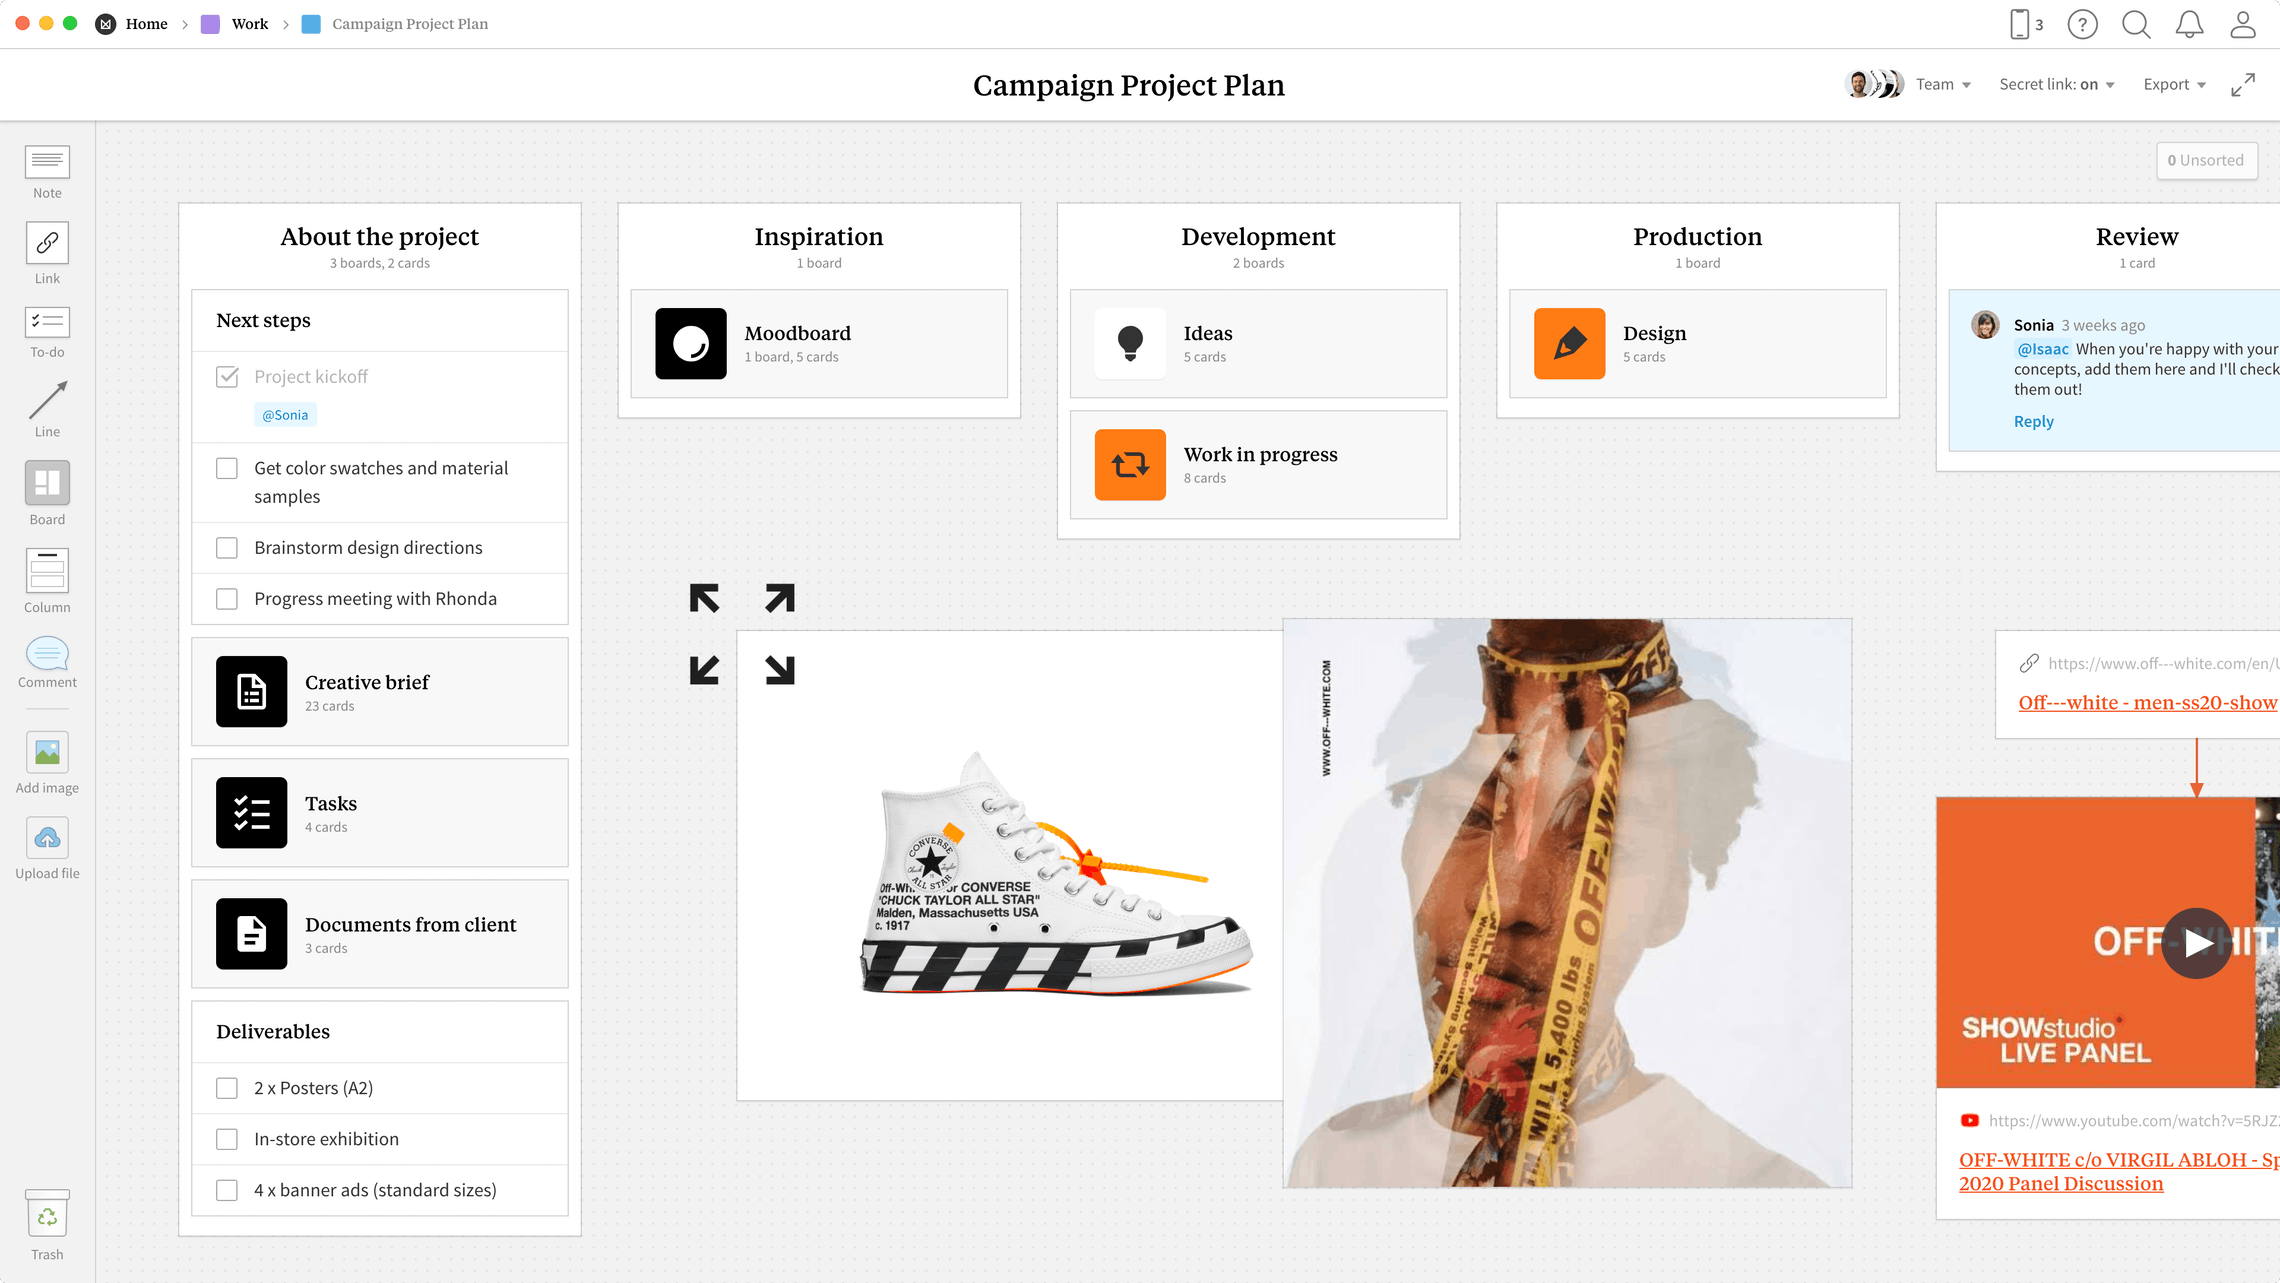 Campaign Project Plan Template, within the Milanote app